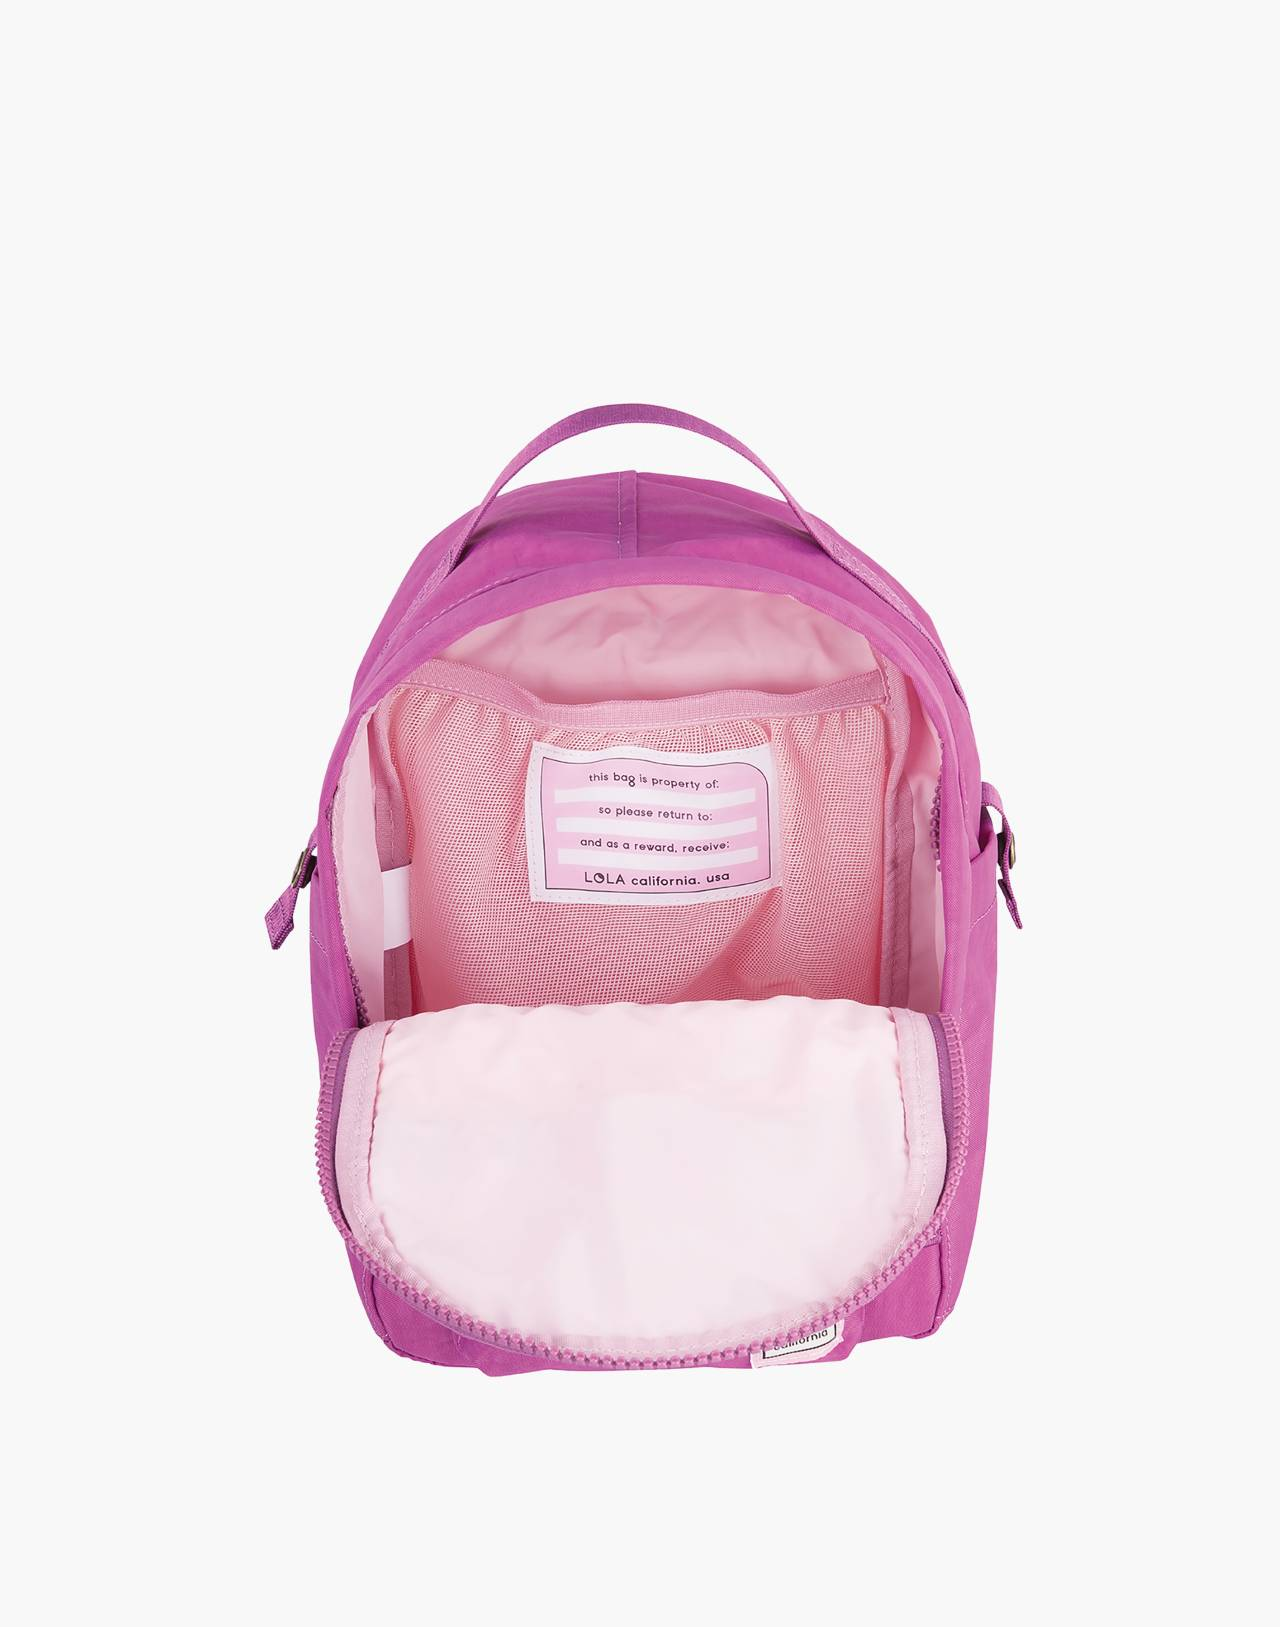 LOLA™ Mondo Utopian Small Backpack in purple image 2